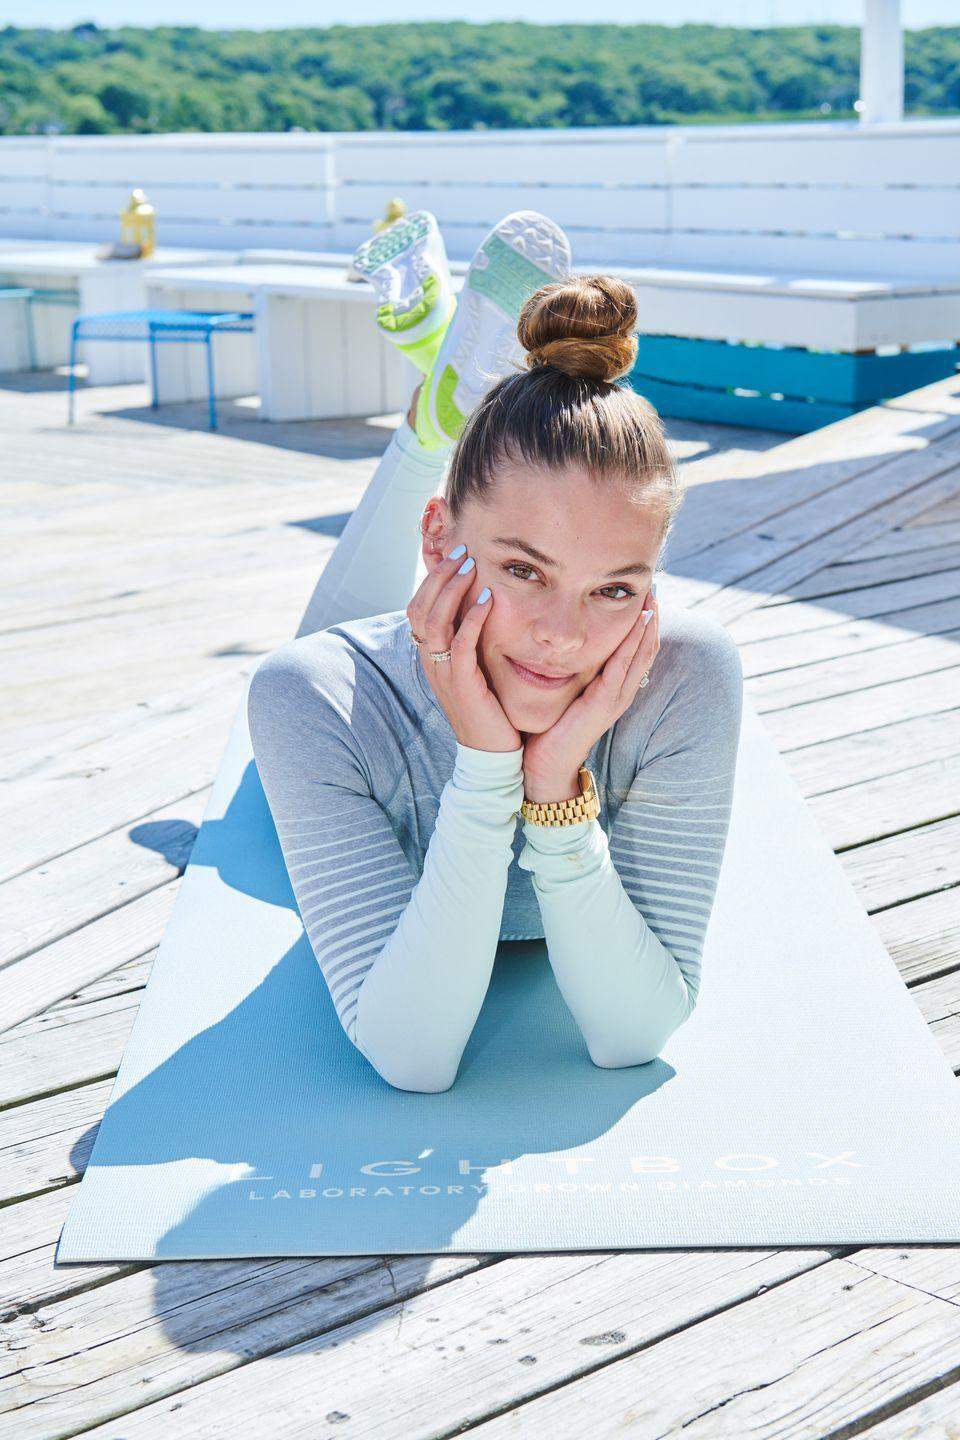 """<p><strong>Who: </strong>Surf Lodge</p><p><strong>What: </strong>Summer wellness series in partnership with Lightbox</p><p><strong>Where:</strong> Surf Lodge hotel in Montauk, New York</p><p><strong>Why: </strong>The Surf Lodge hotel and restaurant are celebrating the return of a true summer with friends with their acclaimed wellness series in partnership with Lightbox Jewelry. Lightbox is a lab-grown diamond company that provides affordable and high-quality jewelry items that will last you a lifetime, through swims, workouts, and travel. The hotel will host celebrity fitness instructors throughout the summer, including Nina Adgal (pictured), and panels on mental health and well-being. A curation of Lightbox jewelry is on site at the hotel throughout the summer, and additionally, a selection of artists including fashion industry veteran Rajni Jacques have also been invited to display artworks and customize surfboards available for purchase. </p><p><a class=""""link rapid-noclick-resp"""" href=""""https://go.redirectingat.com?id=74968X1596630&url=https%3A%2F%2Flightboxjewelry.com%2Fpages%2Fthe-surf-lodge&sref=https%3A%2F%2Fwww.elle.com%2Ffashion%2Fshopping%2Fg36905733%2Fthe-launch-julys-hottest-fashion-drops%2F"""" rel=""""nofollow noopener"""" target=""""_blank"""" data-ylk=""""slk:VIEW MORE"""">VIEW MORE</a></p>"""